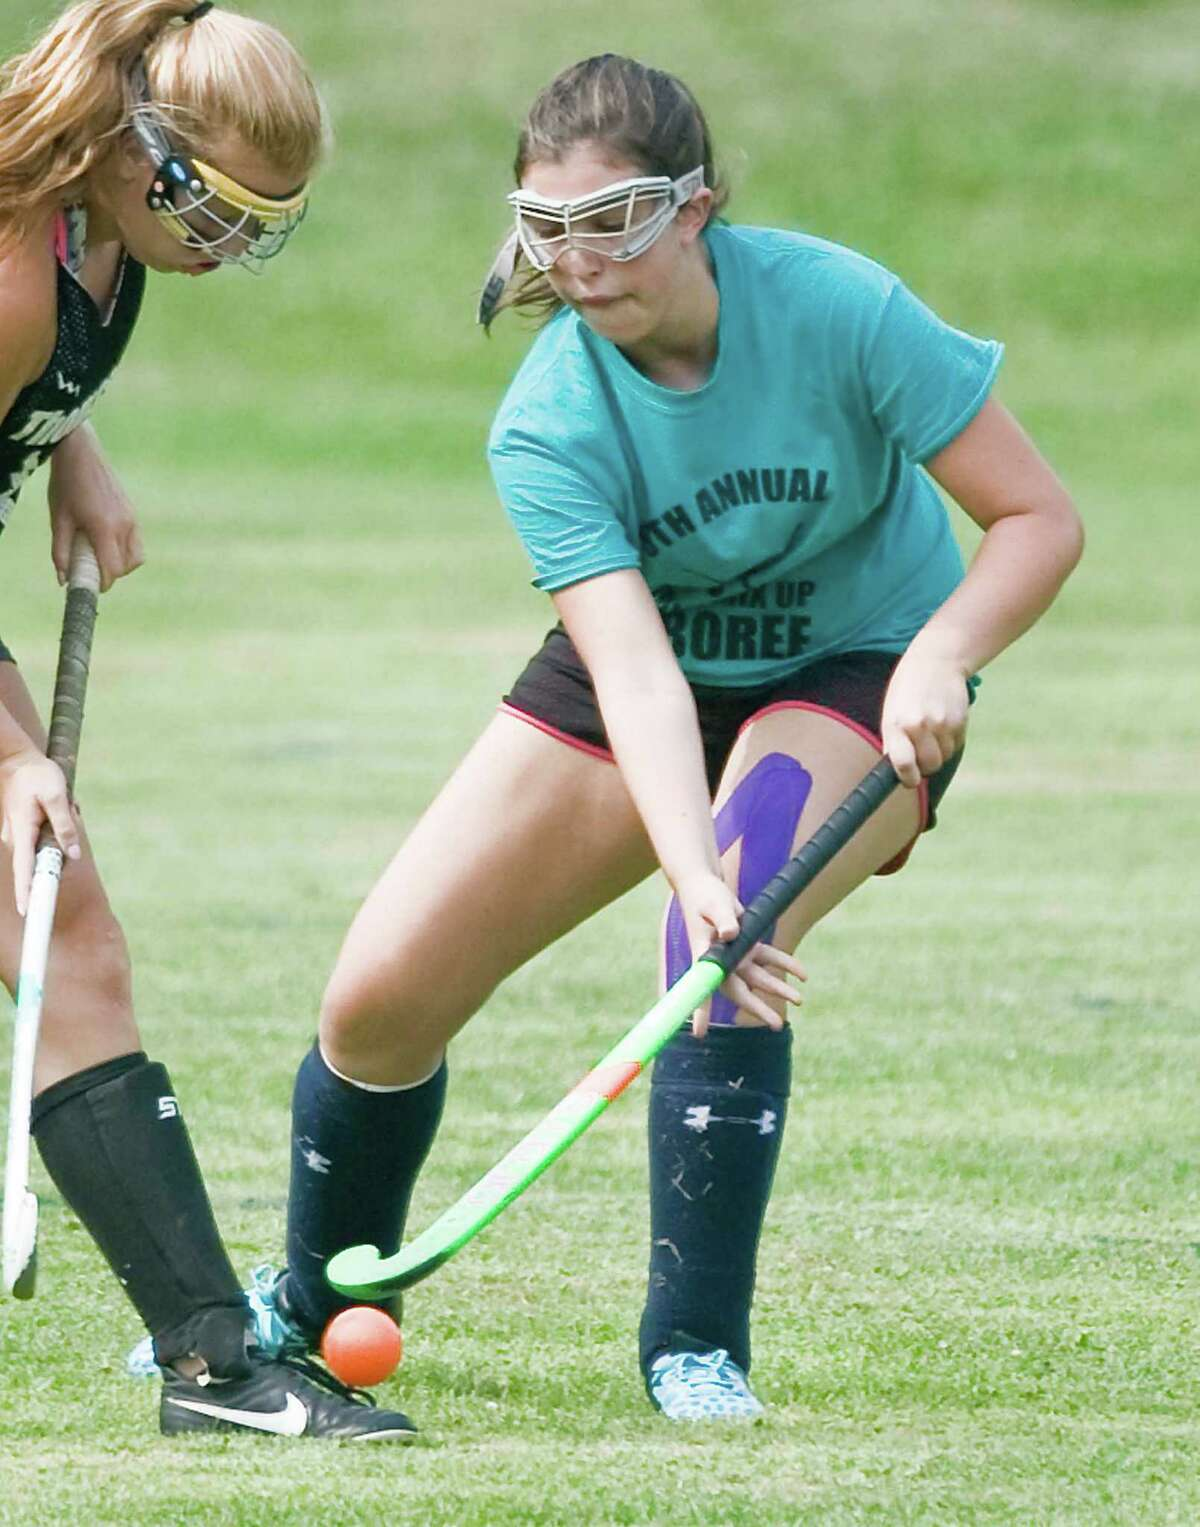 Immaculate High School's Lauren Garvey tries to gain control of the ball during the high school field hockey jamboree at Immaculate High School. Sunday, Aug. 30, 2015